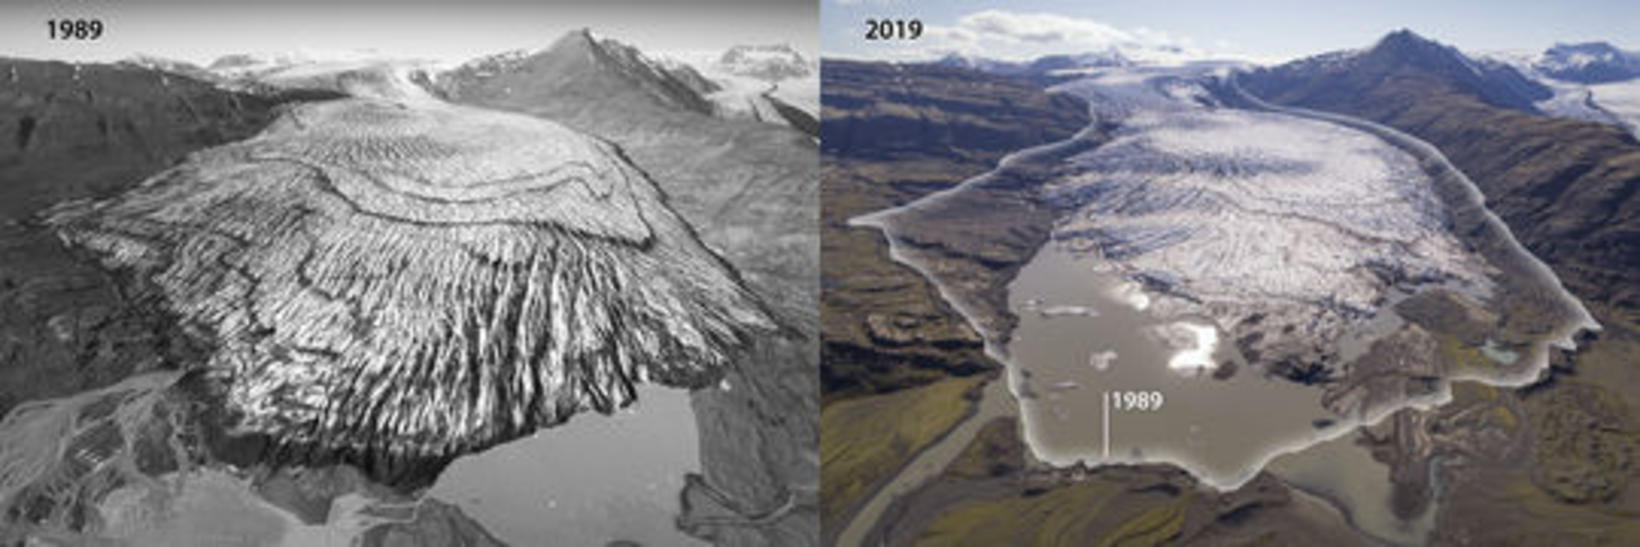 Skálafellsjökull glacier 1989 and 2019.